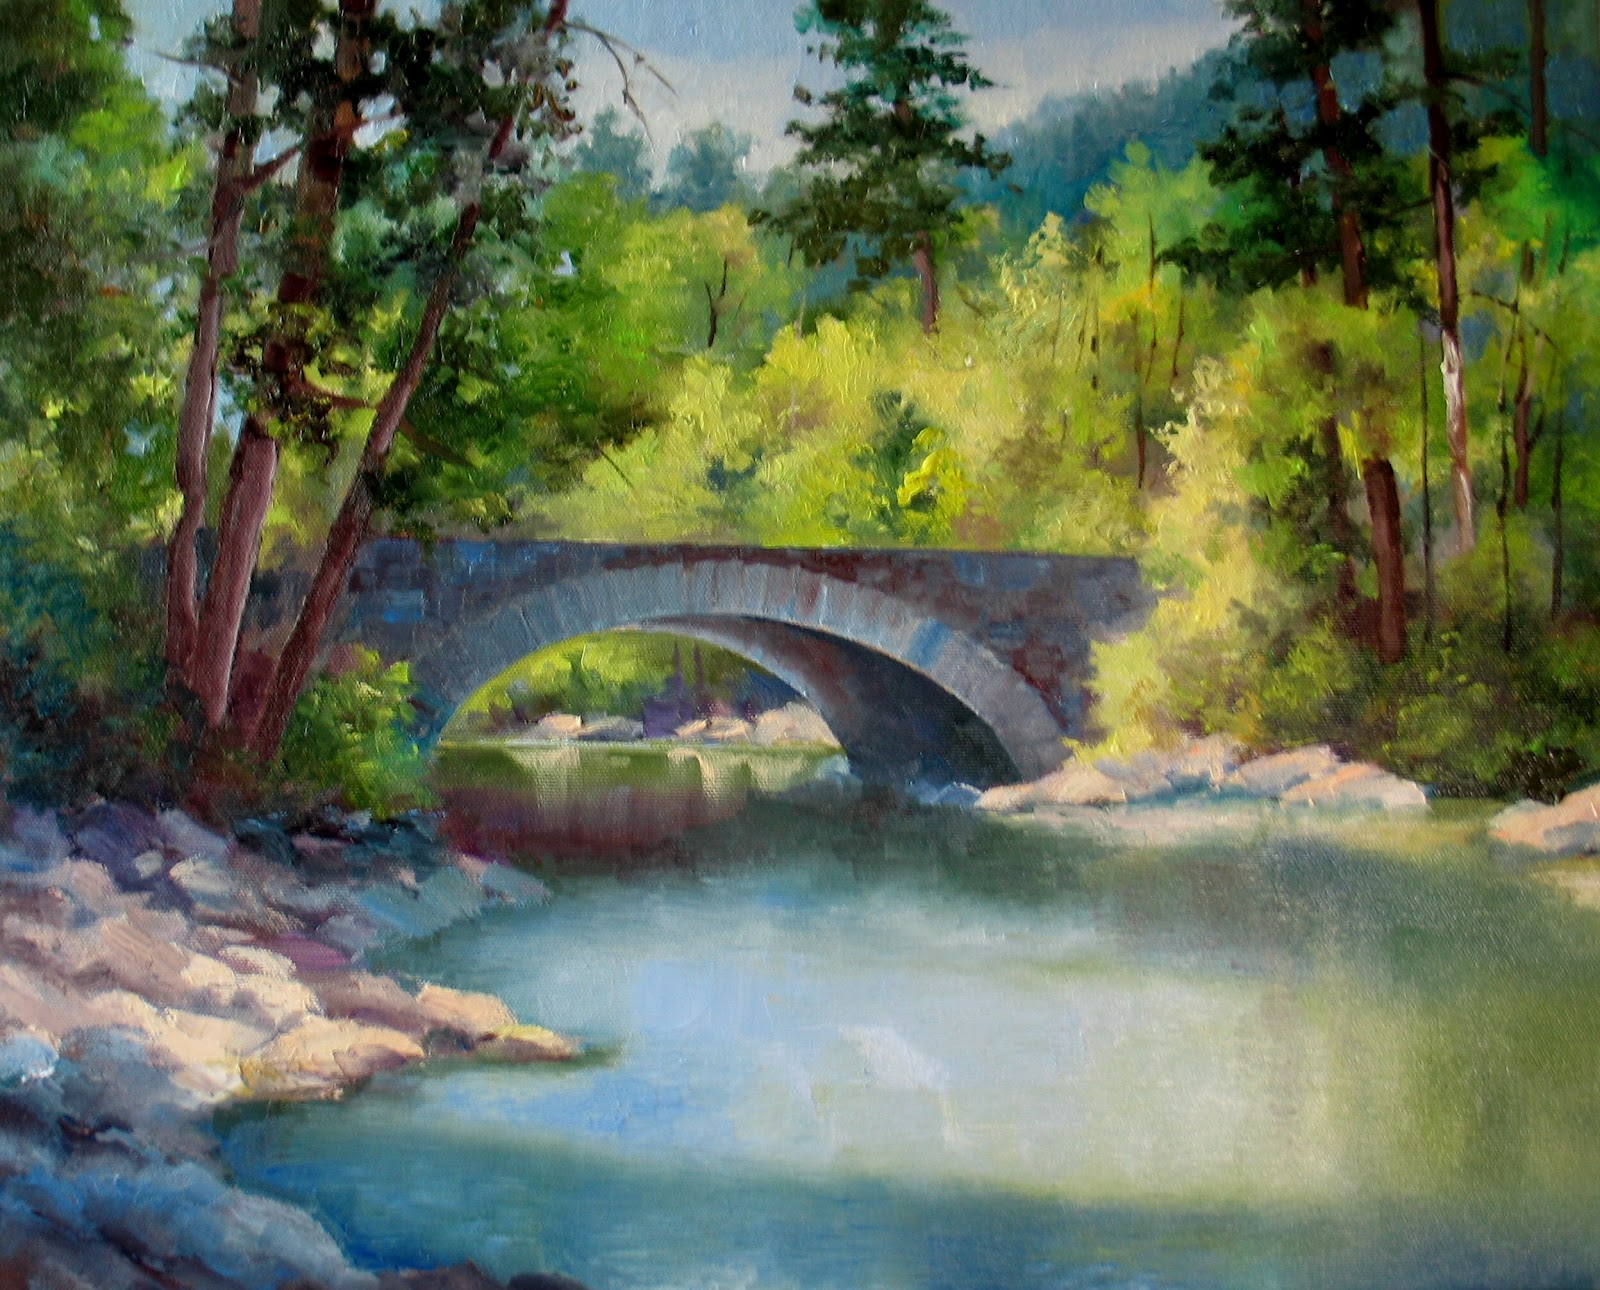 Stone bridge painting images for Airbrushing mural